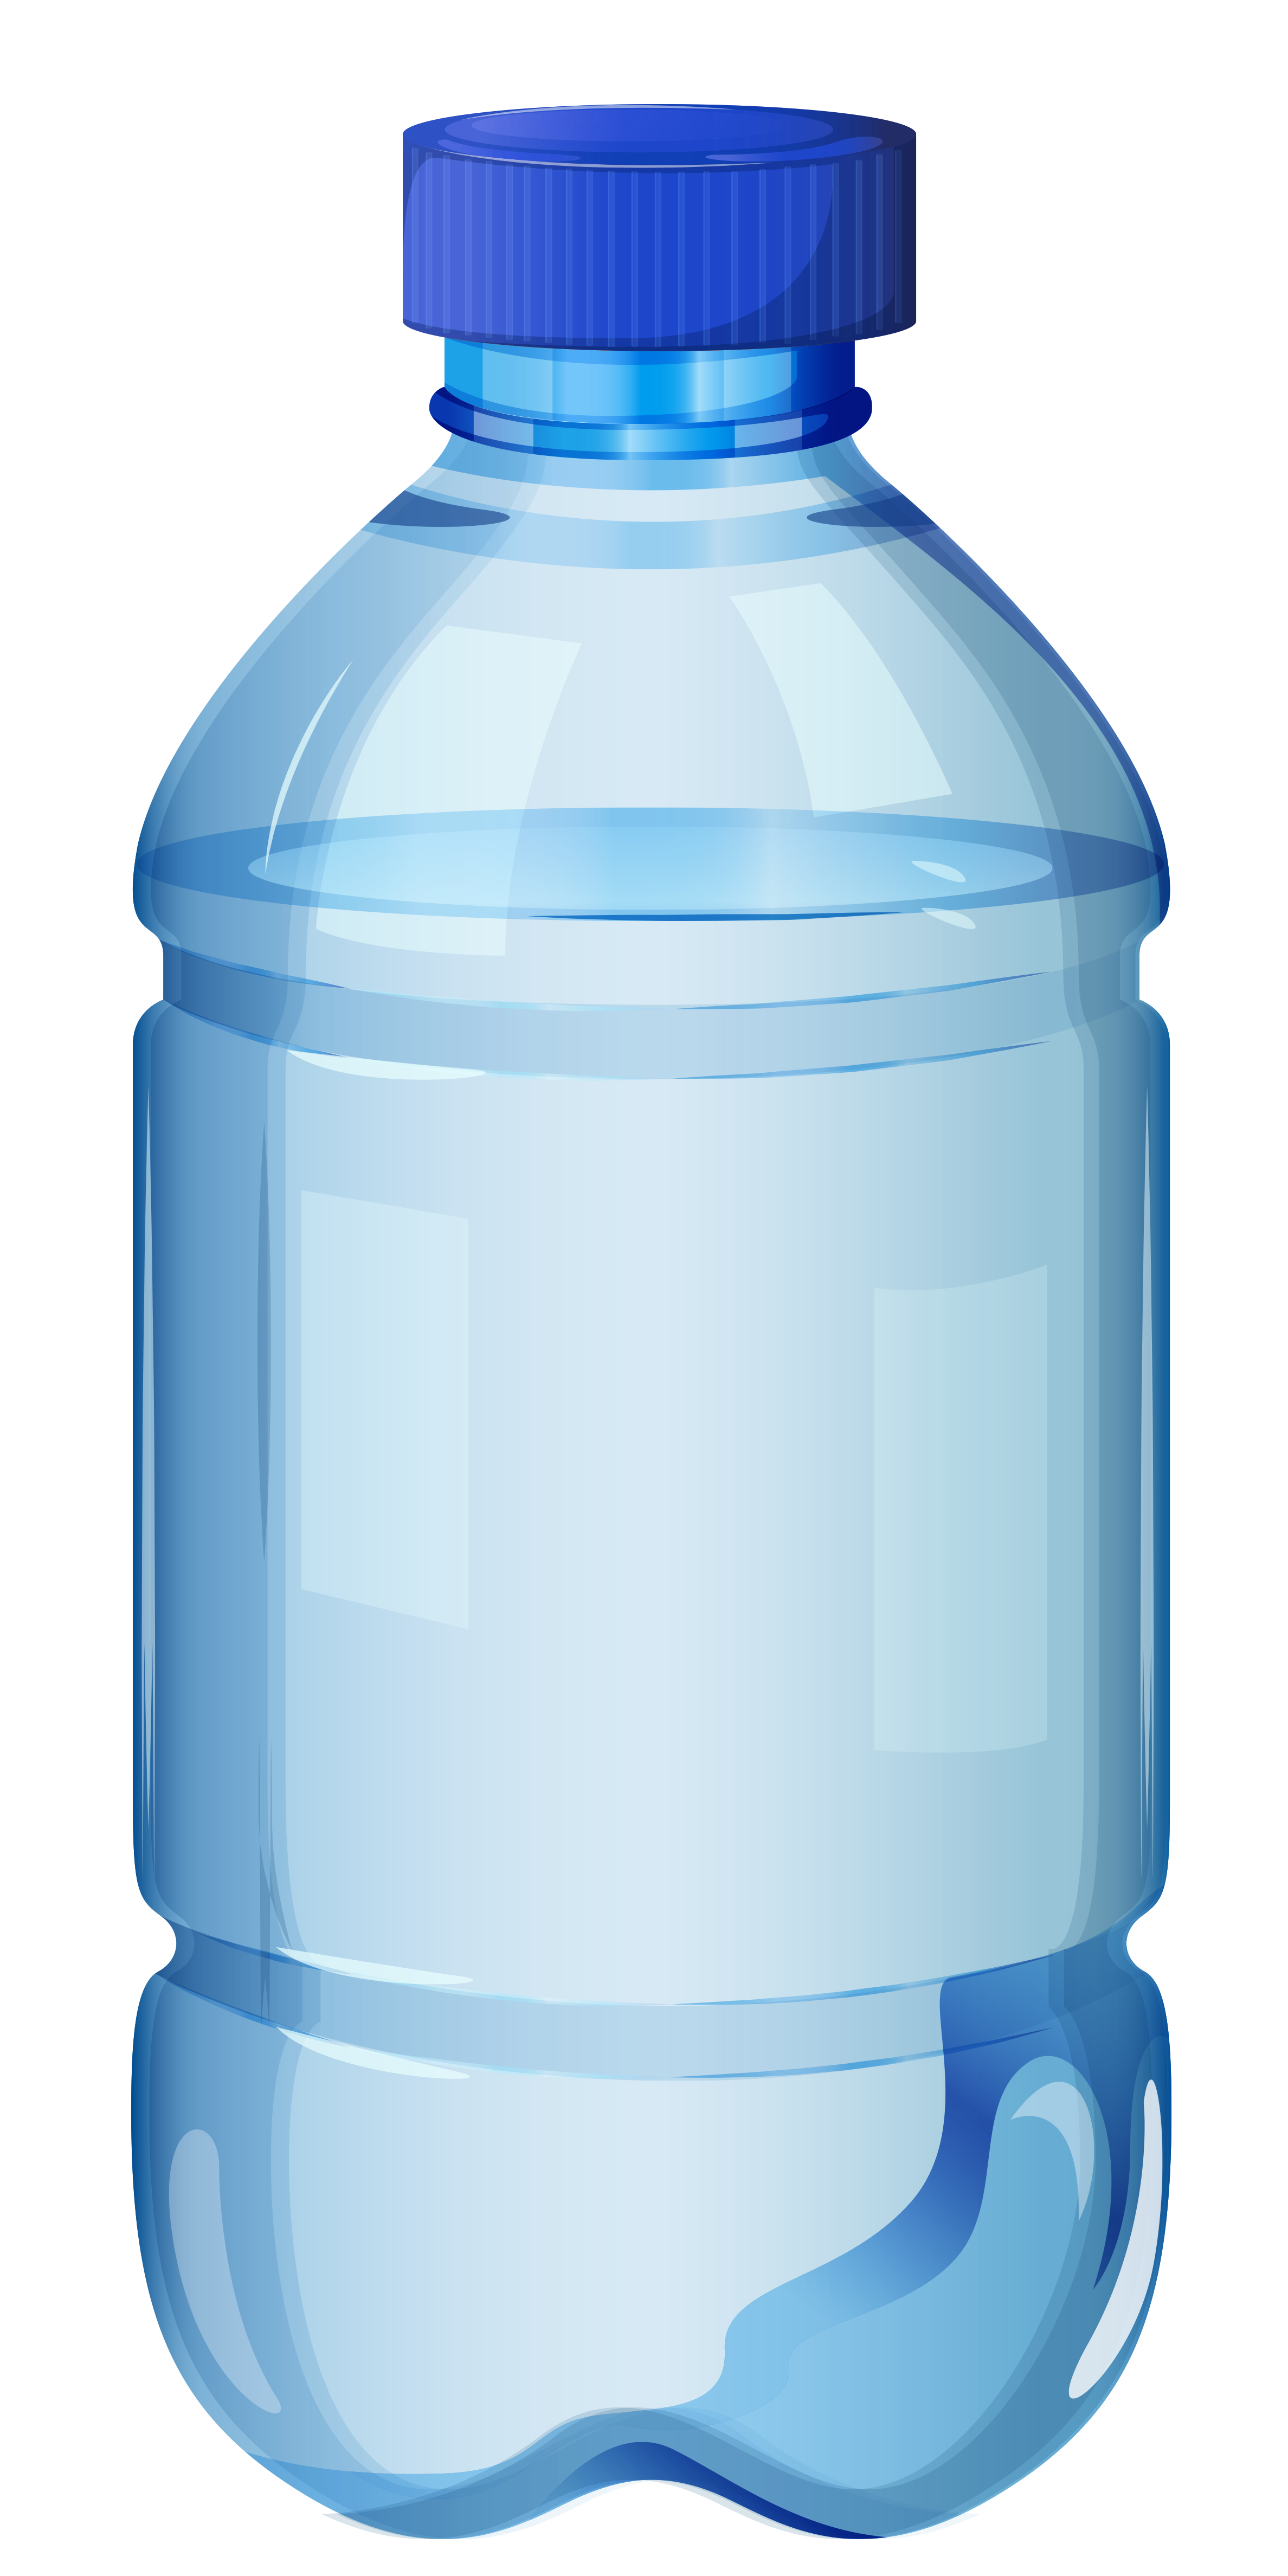 bottled clipart clipground Case of Bottled Water Clip Art bottled water clip art images